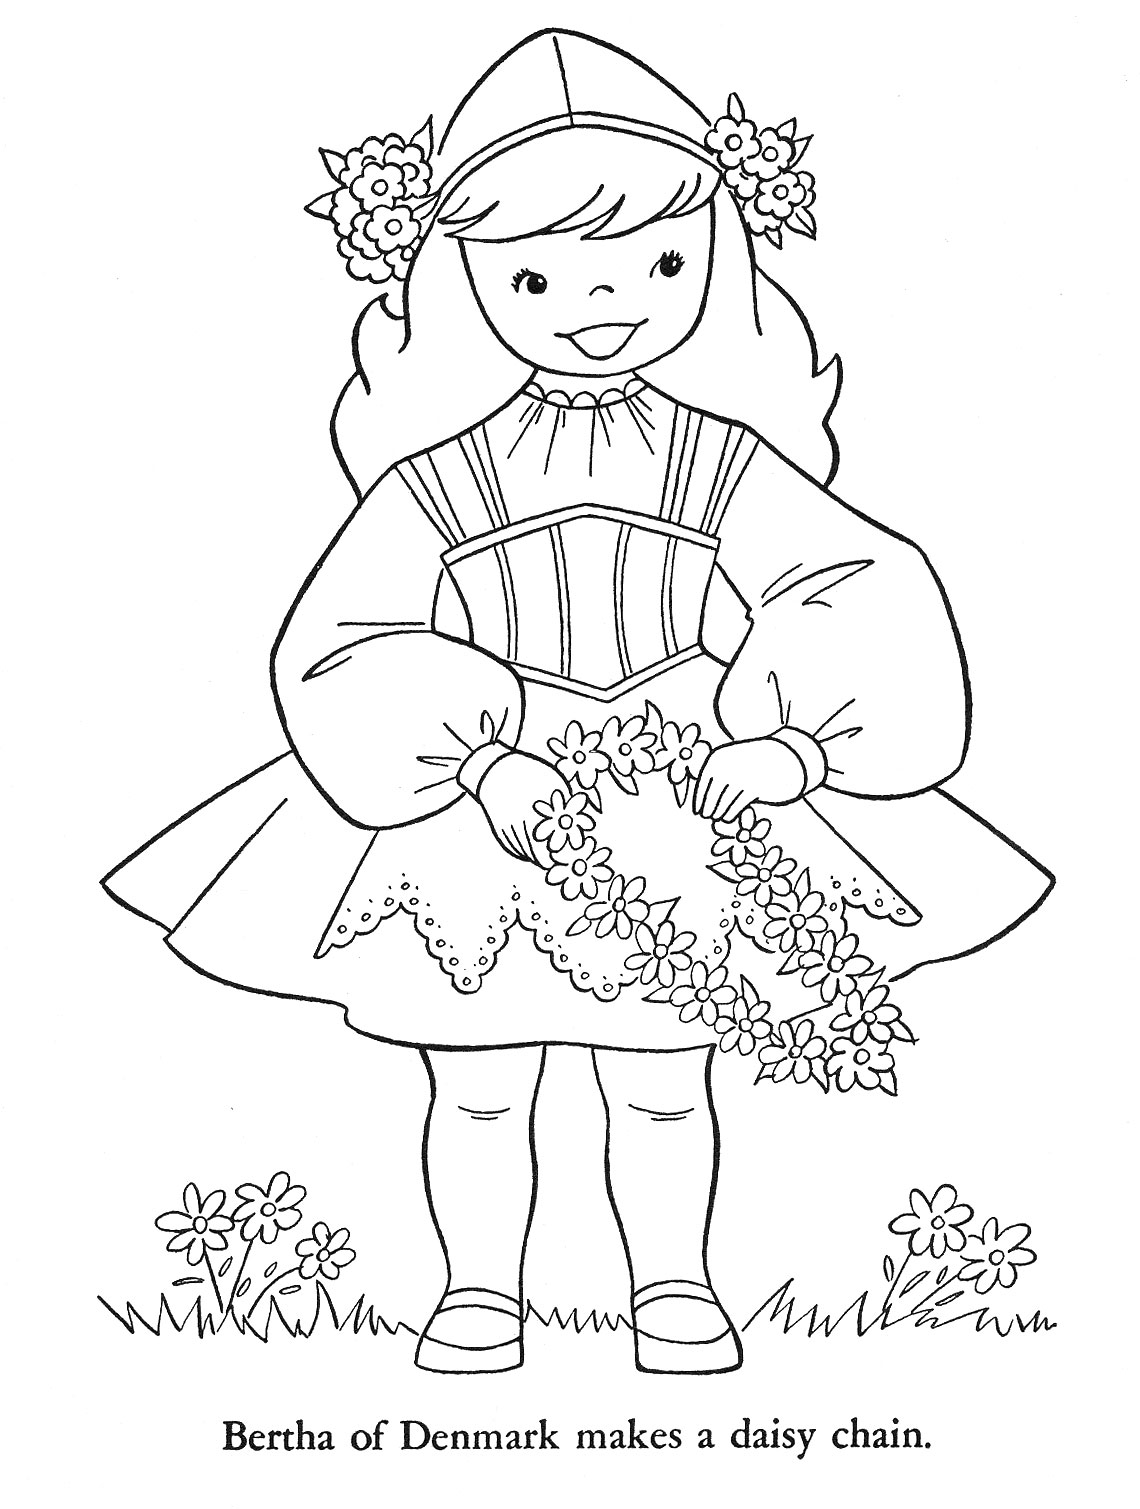 denmark coloring pages - photo#9